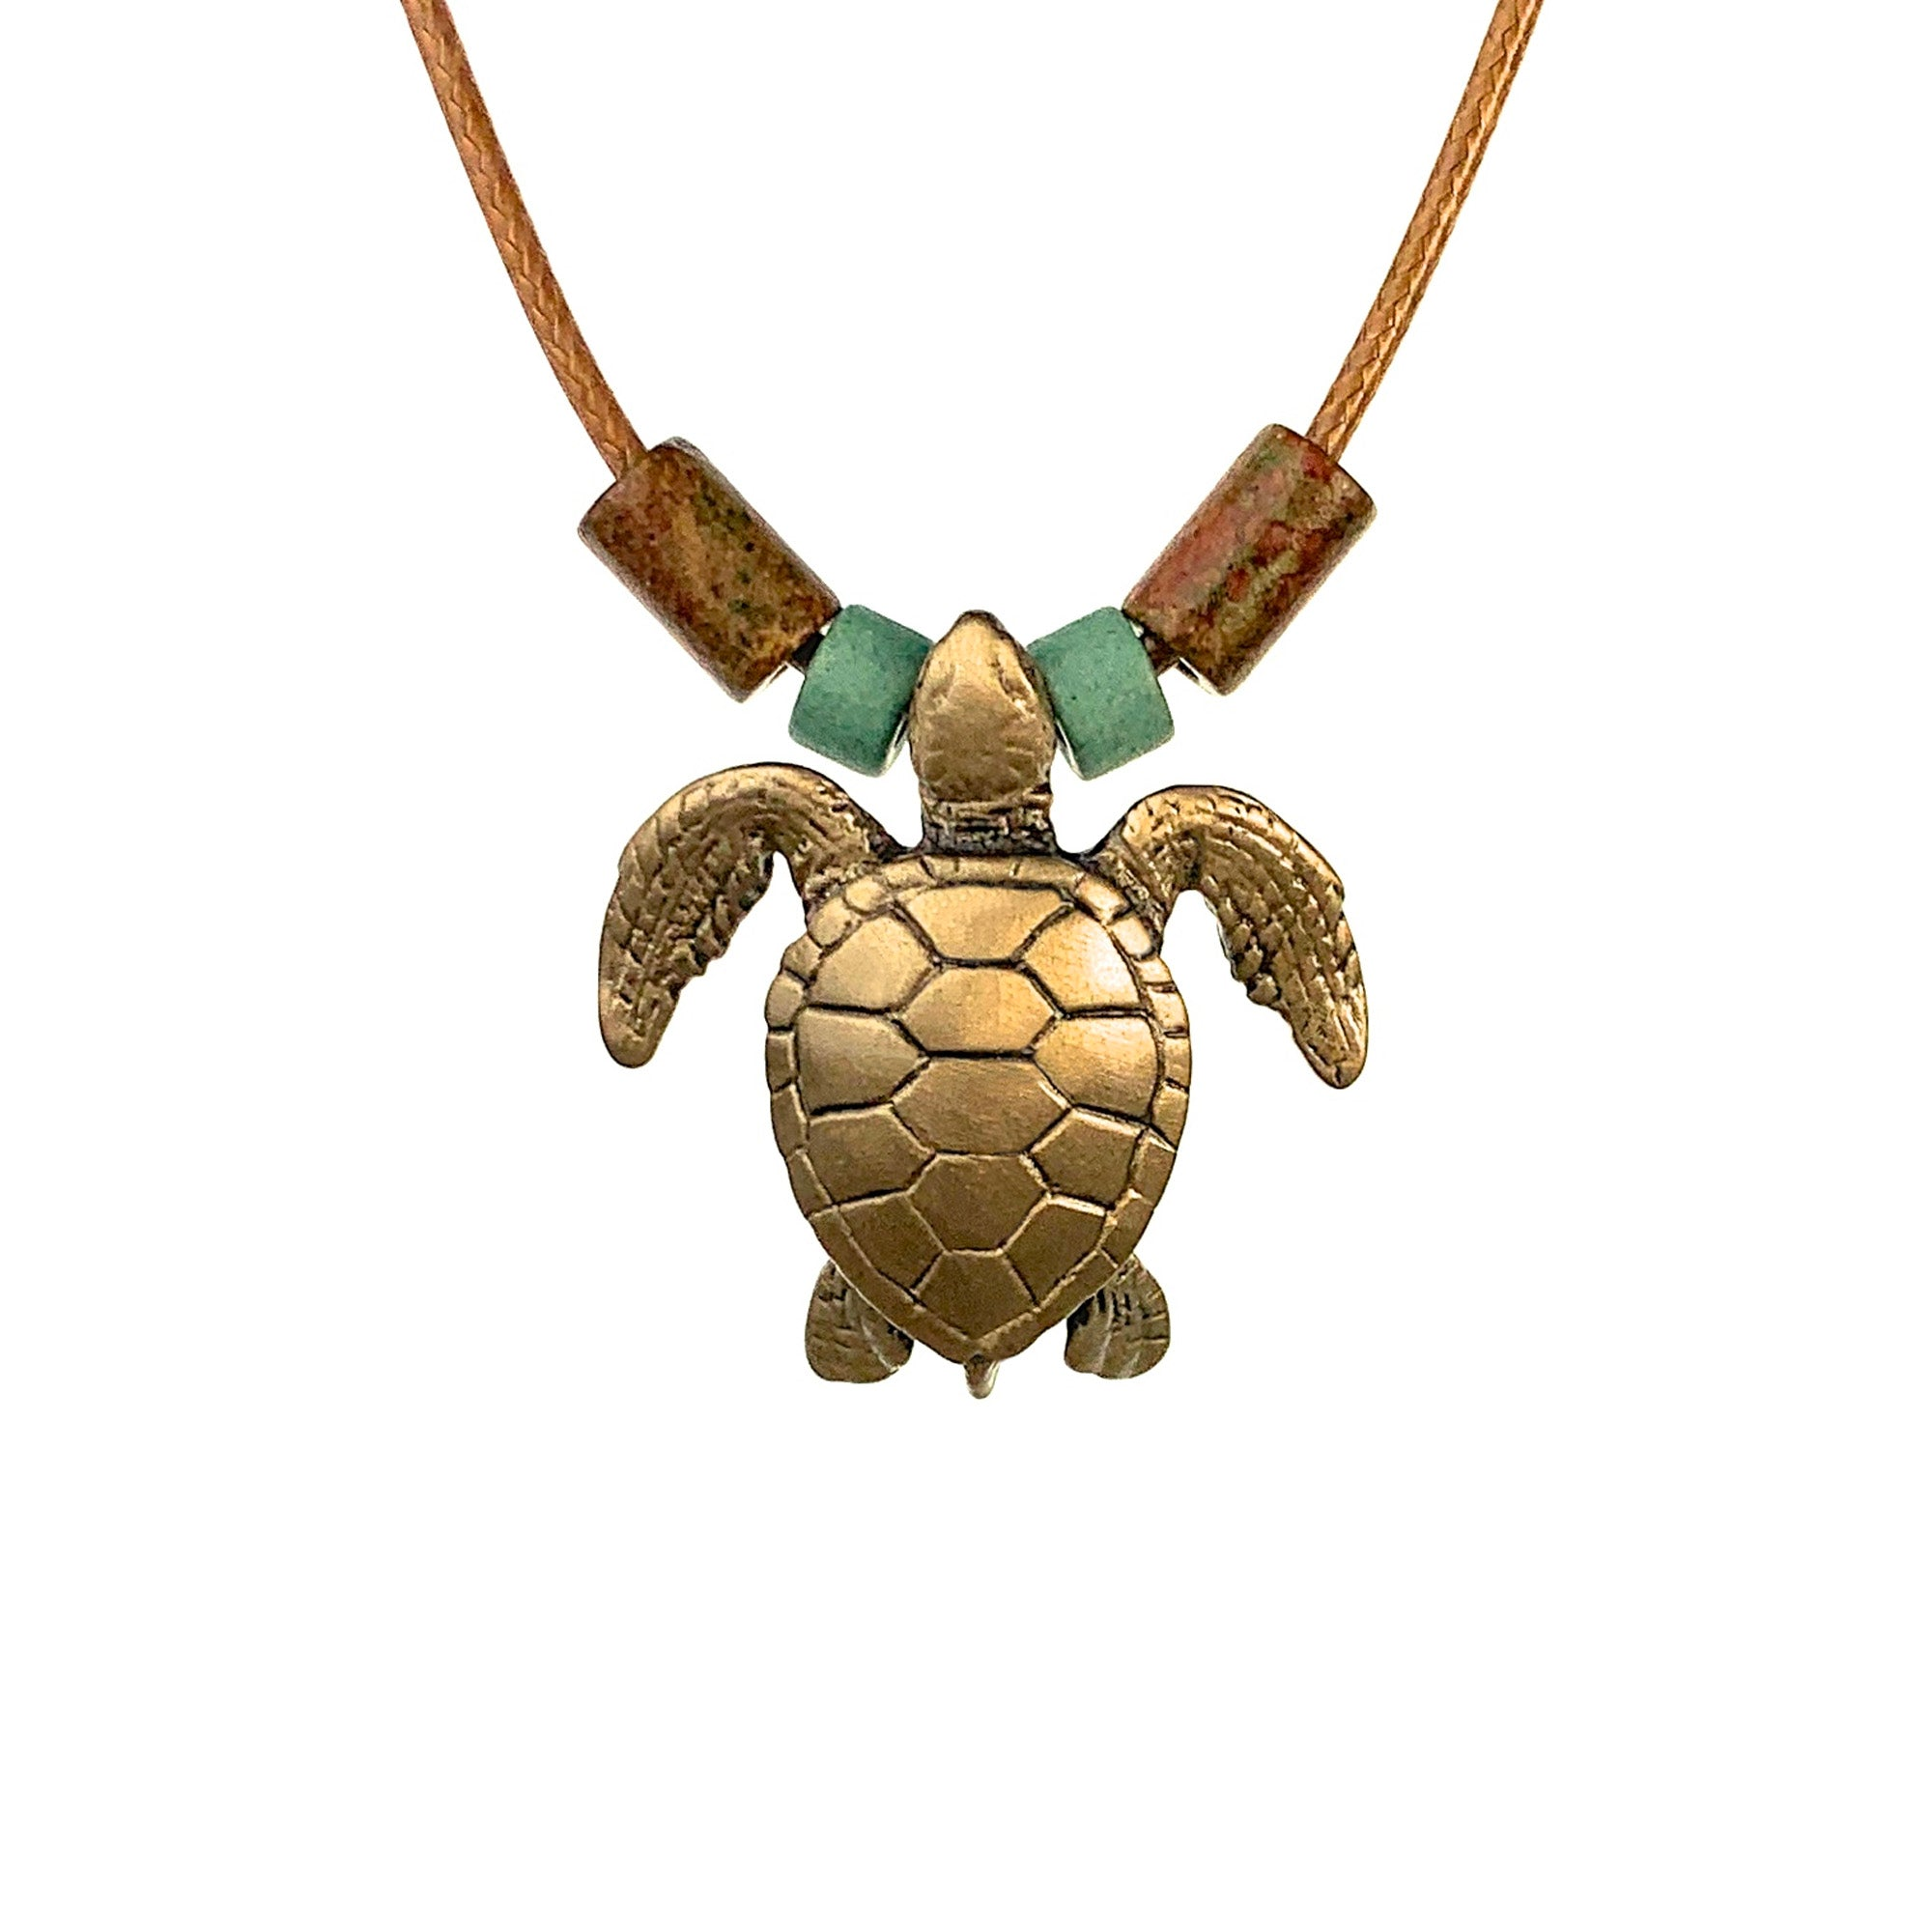 gifts for divers gifts for her Handcrafted sterling silver mermaid and sea turtle necklace gifts for turtle lovers sea turtle jewelry.